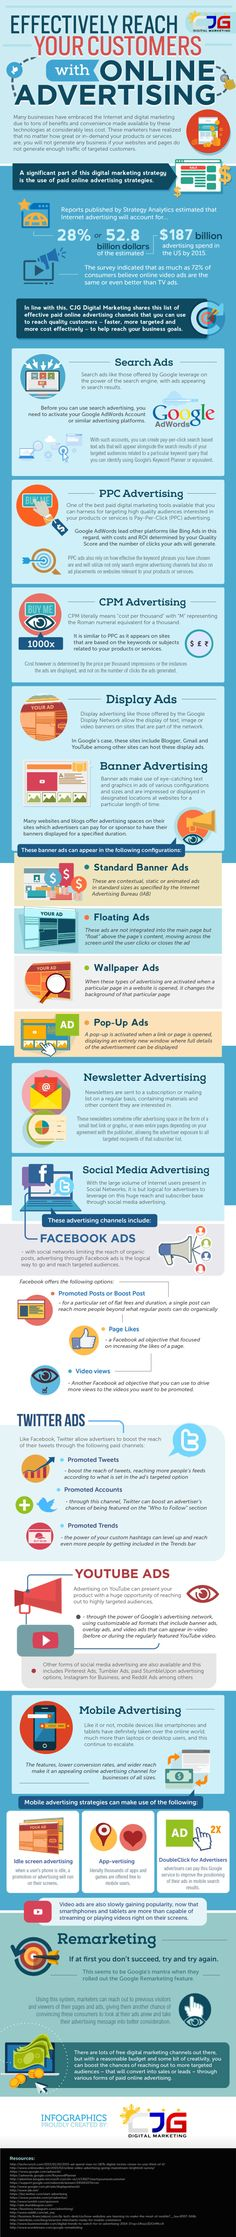 Internet Marketing Expert Gloria Rand shares an infographic that highlights some of the basic online advertising terms, & how you can use ads for your biz  #ppc #onlineads #google